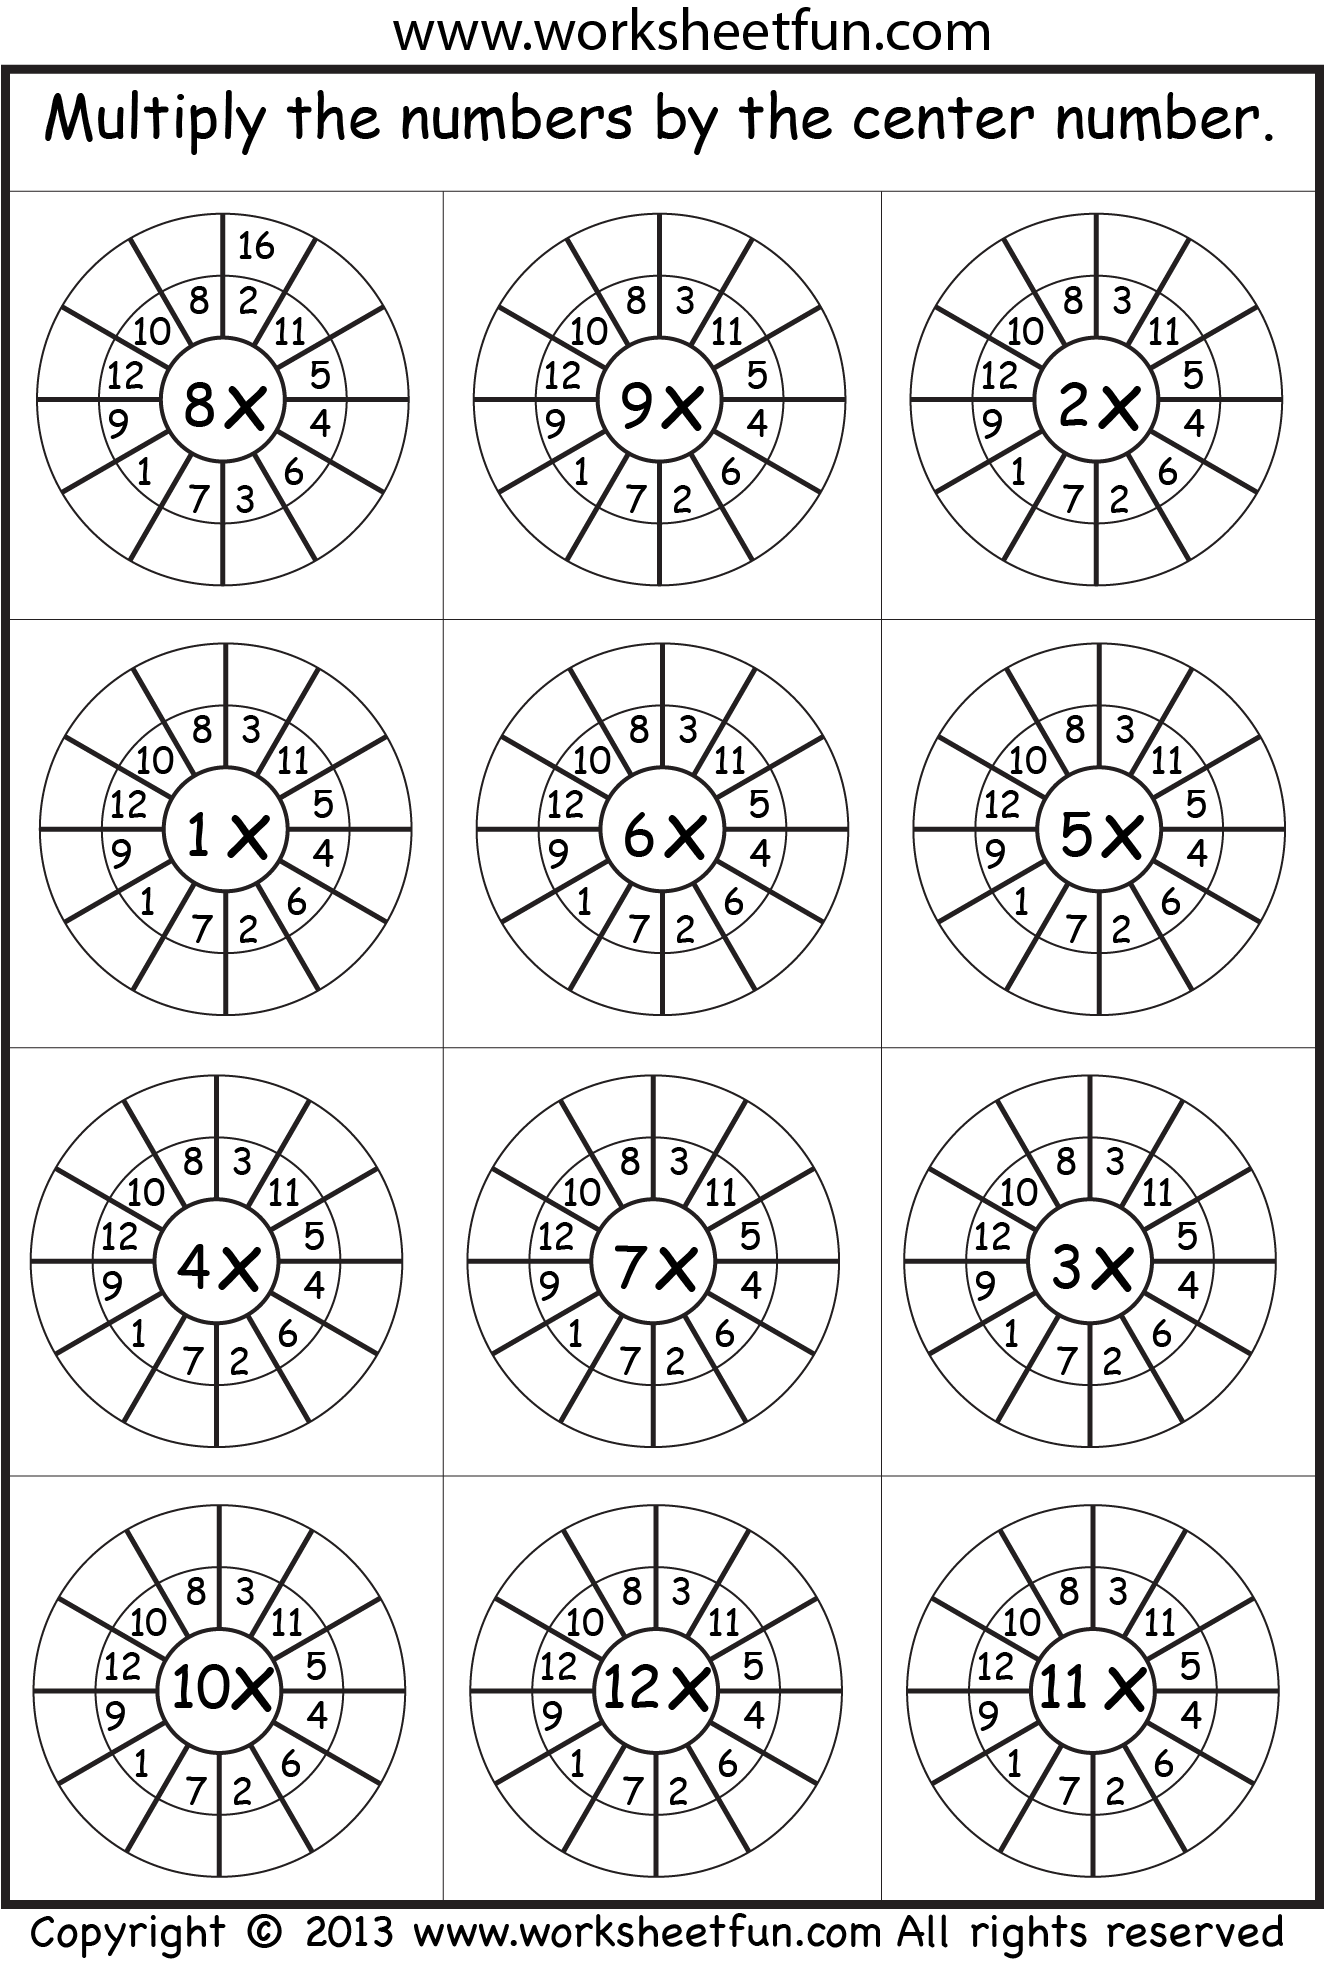 Uncategorized Multiplication Worksheets Free multiplication worksheet helpful for memory work with claritas classical academy cycle 3 math http